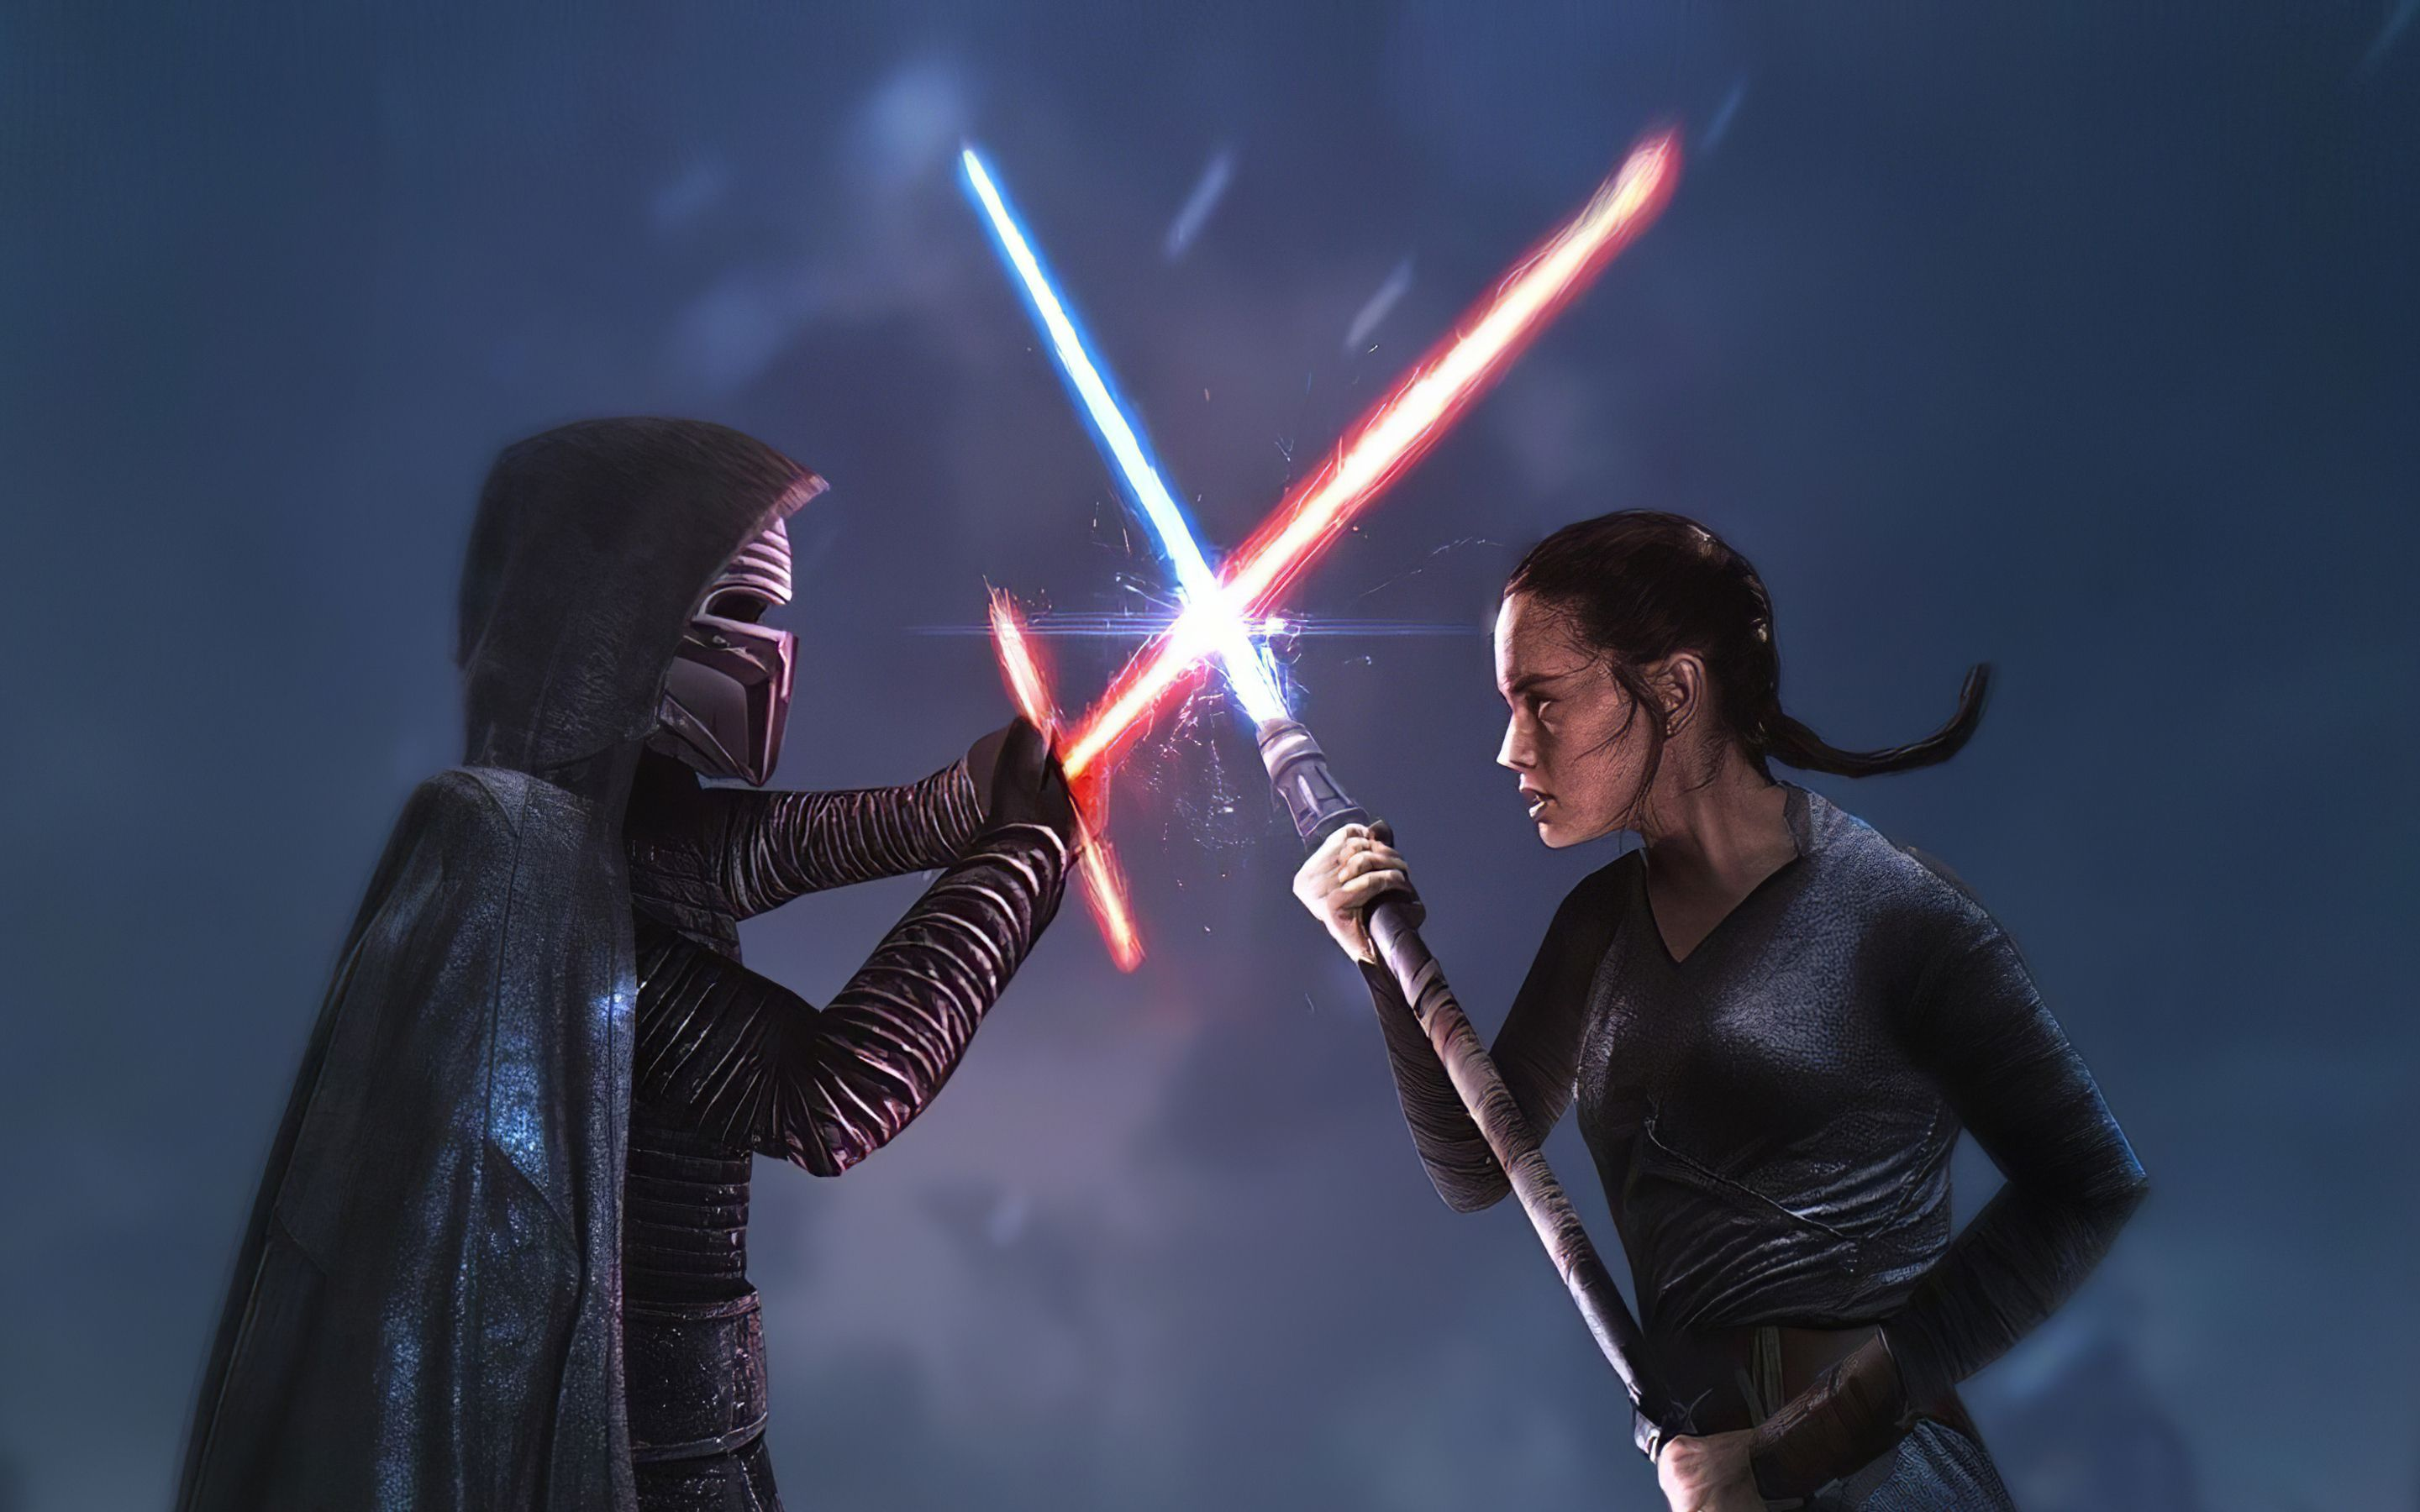 2880x1800 Star Wars IX Duel Of Fates 4k Macbook Pro Retina HD 4k Wallpapers, Image, Backgrounds, Photos and Pictures